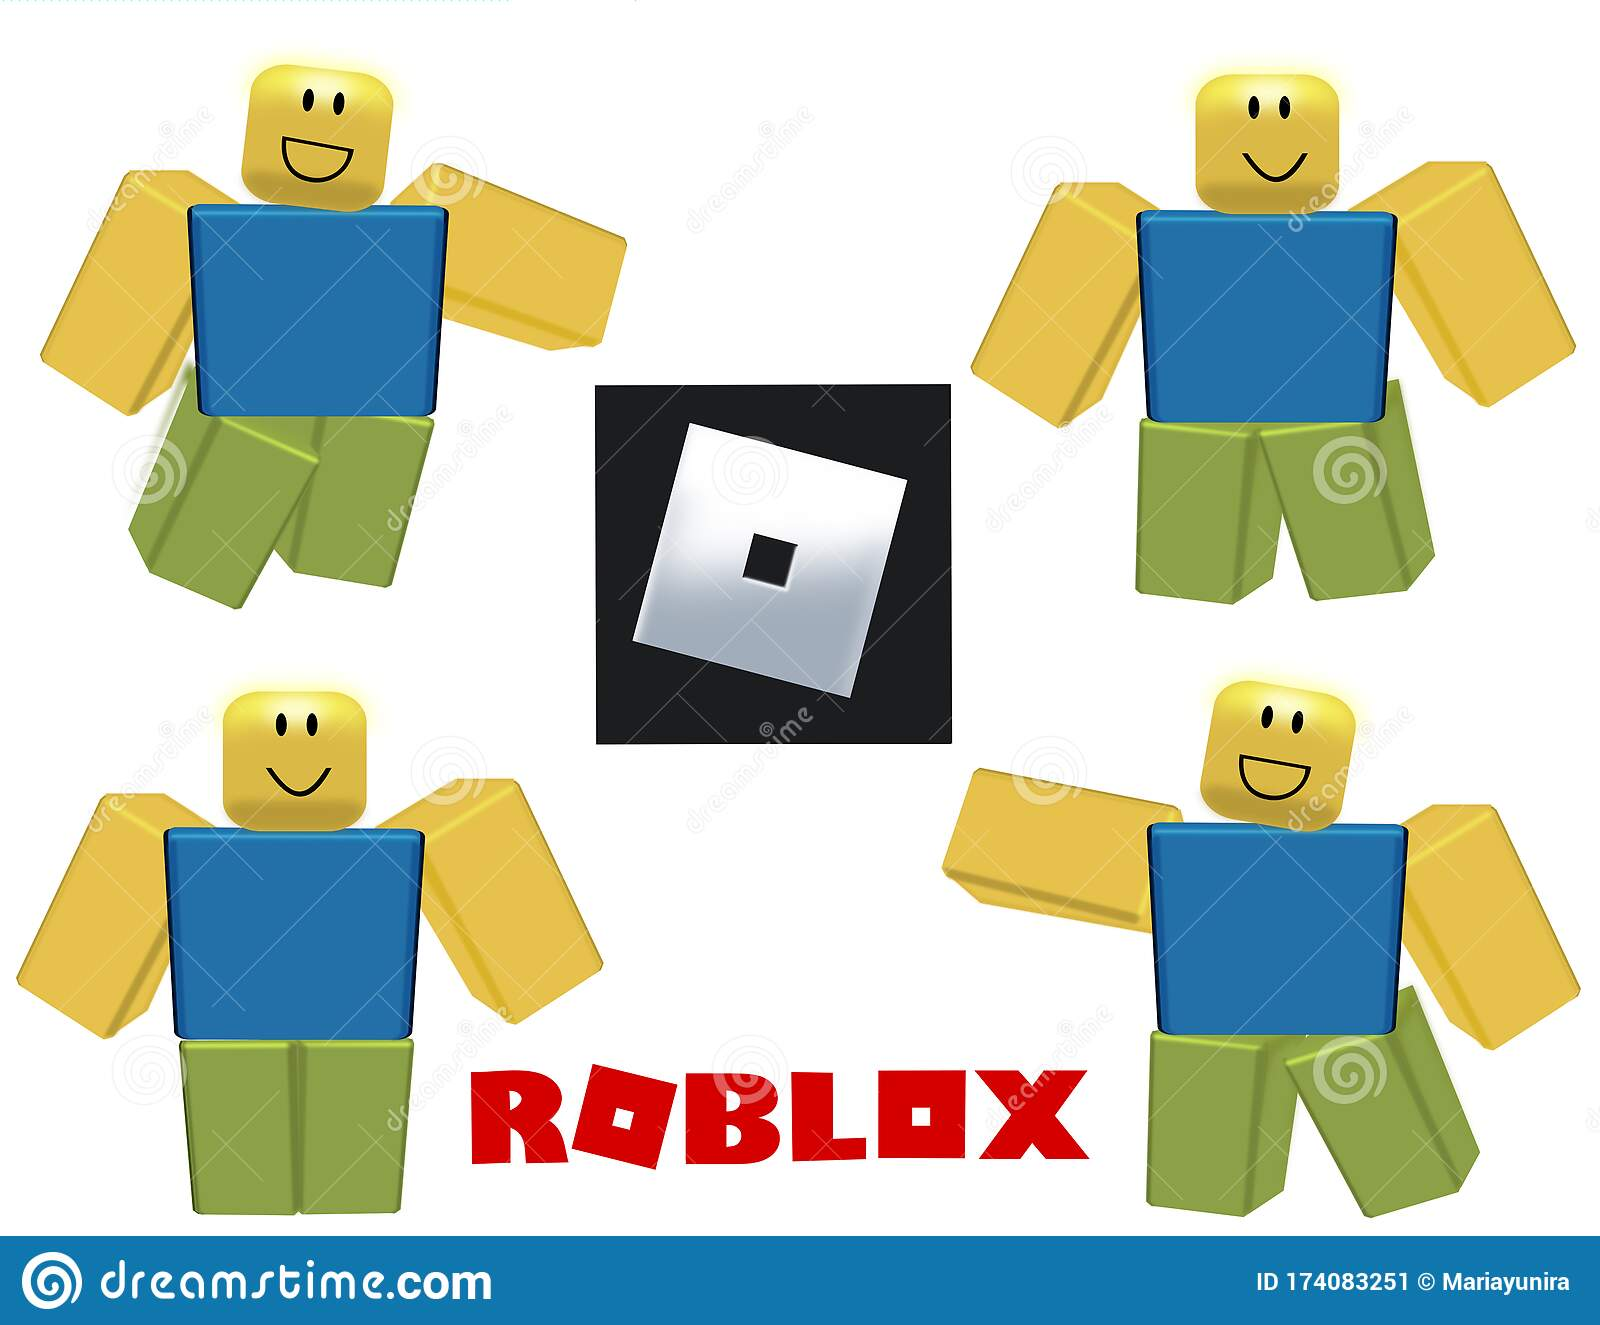 Roblox New Logo And Character Editorial Photo Illustration Of